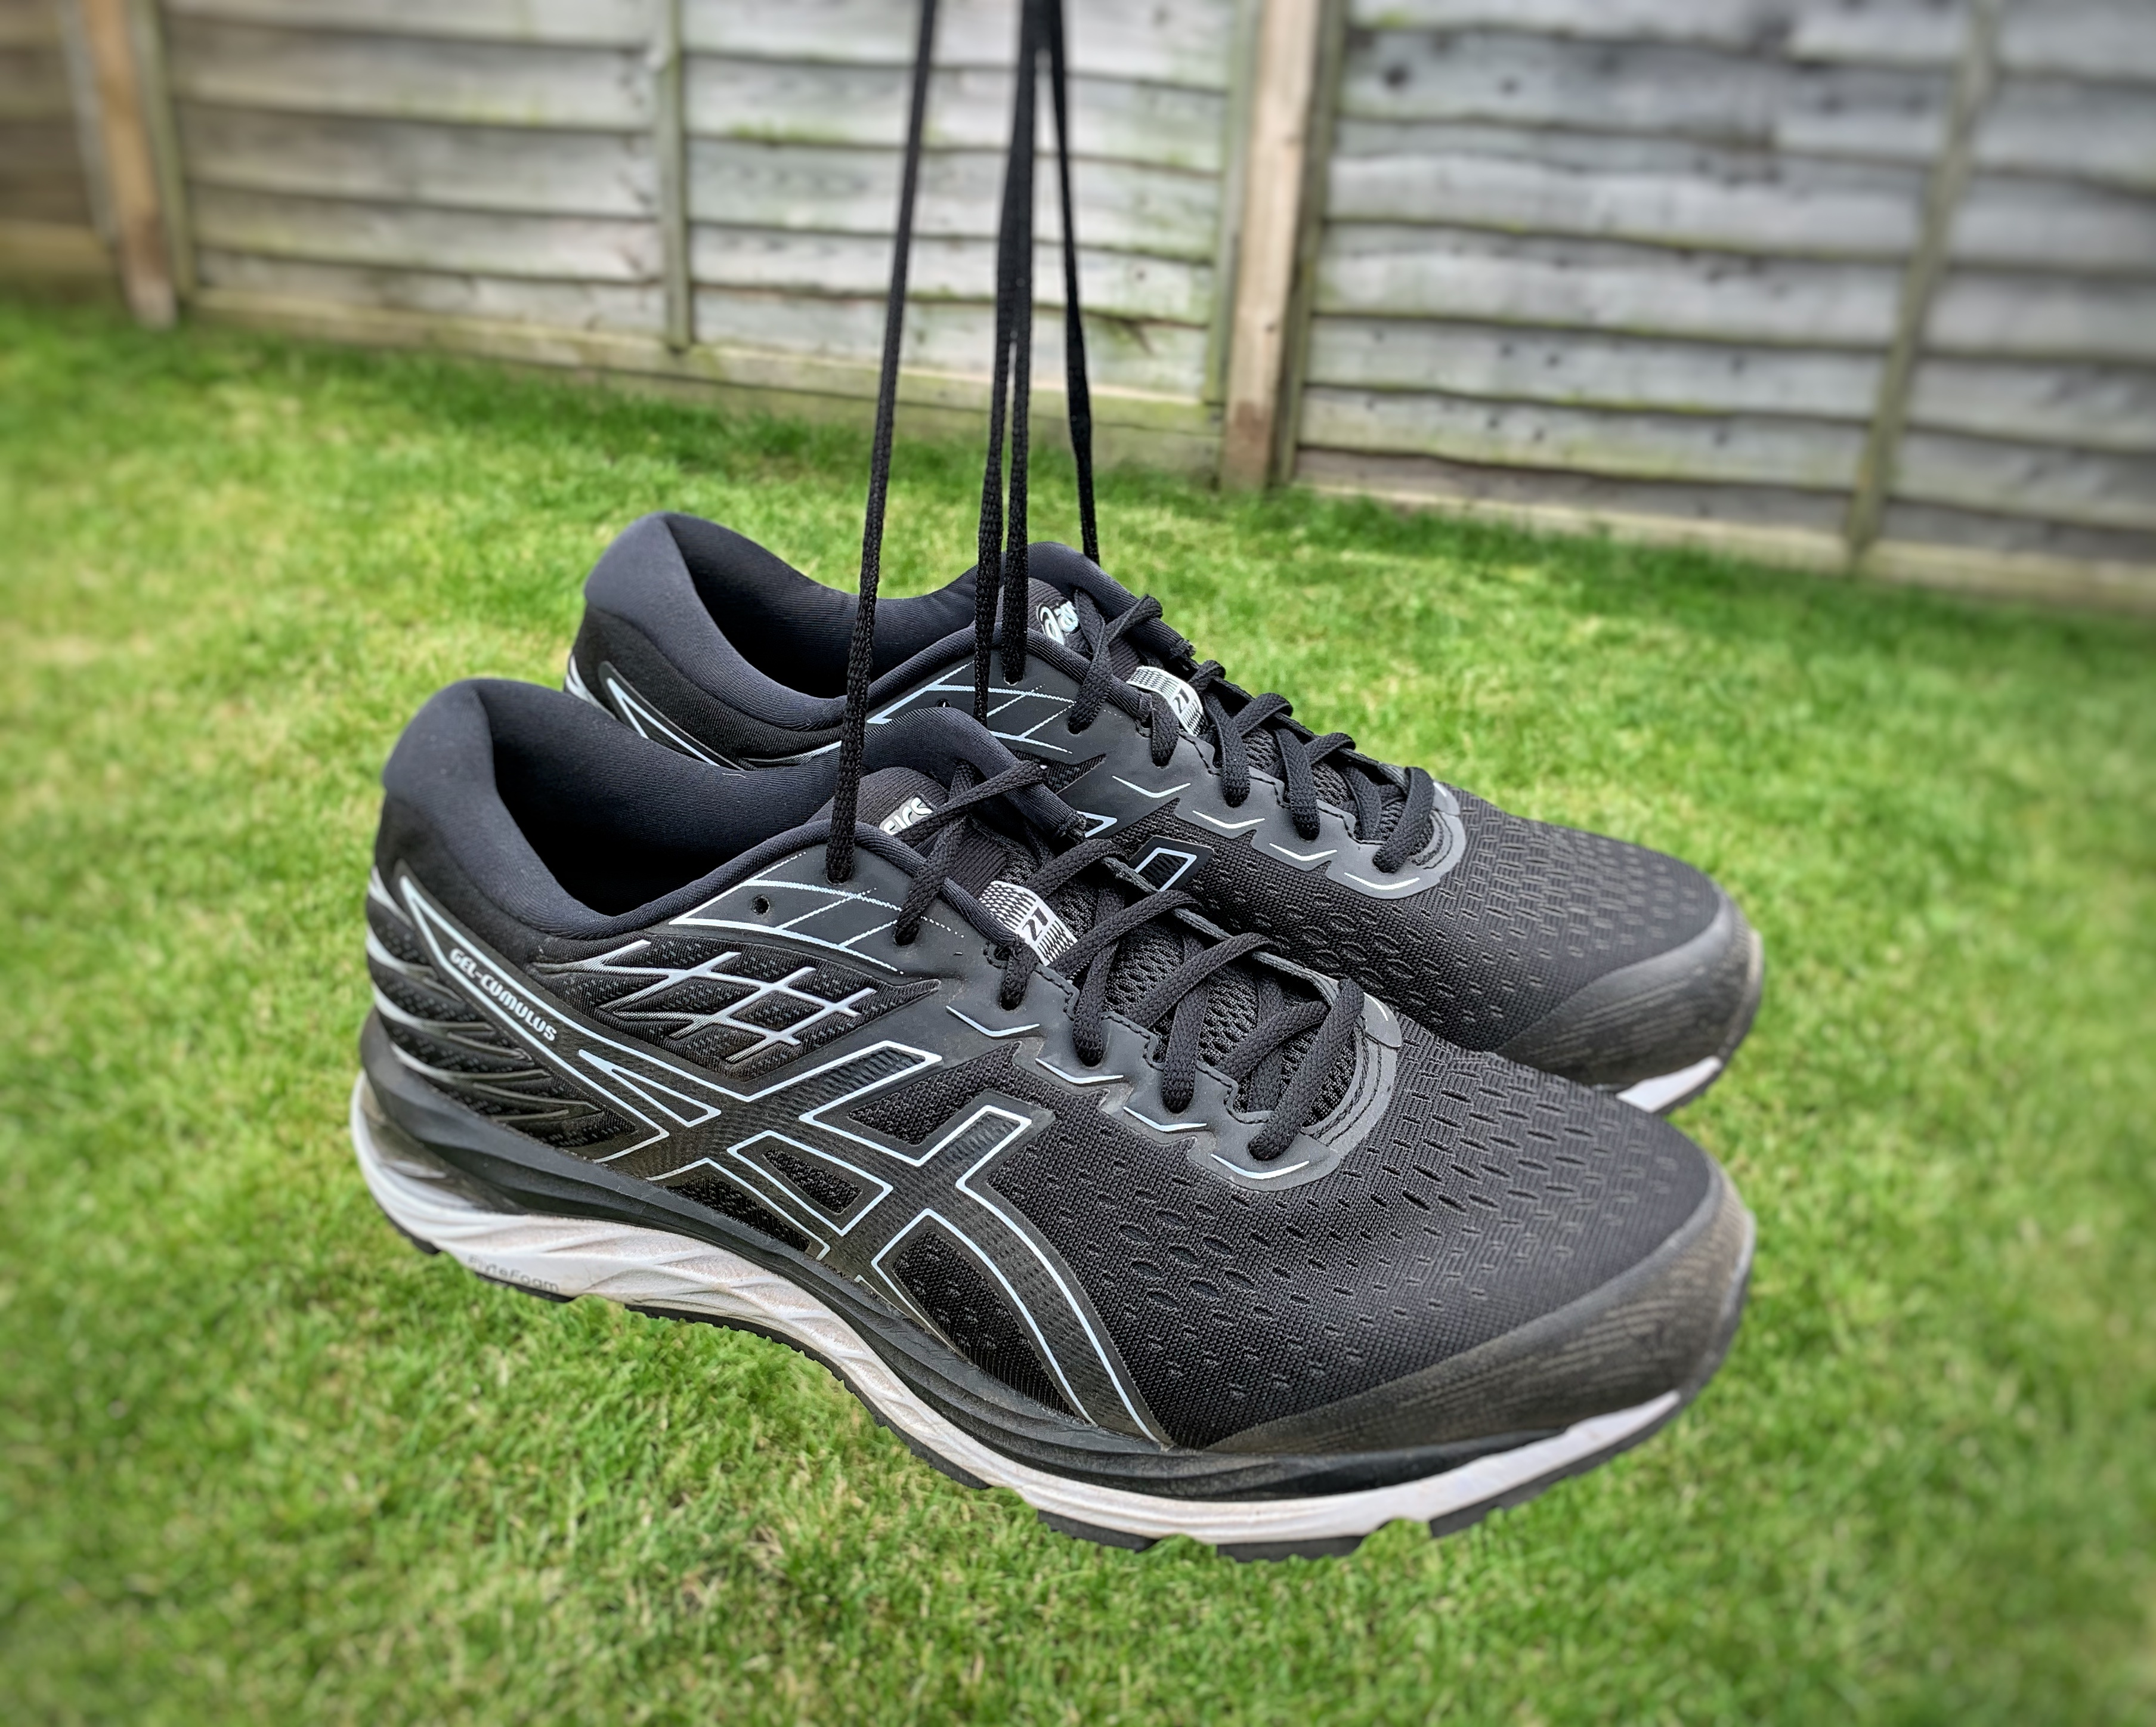 30+ Best Asics Neutral Running Shoes (Buyer's Guide) | RunRepeat